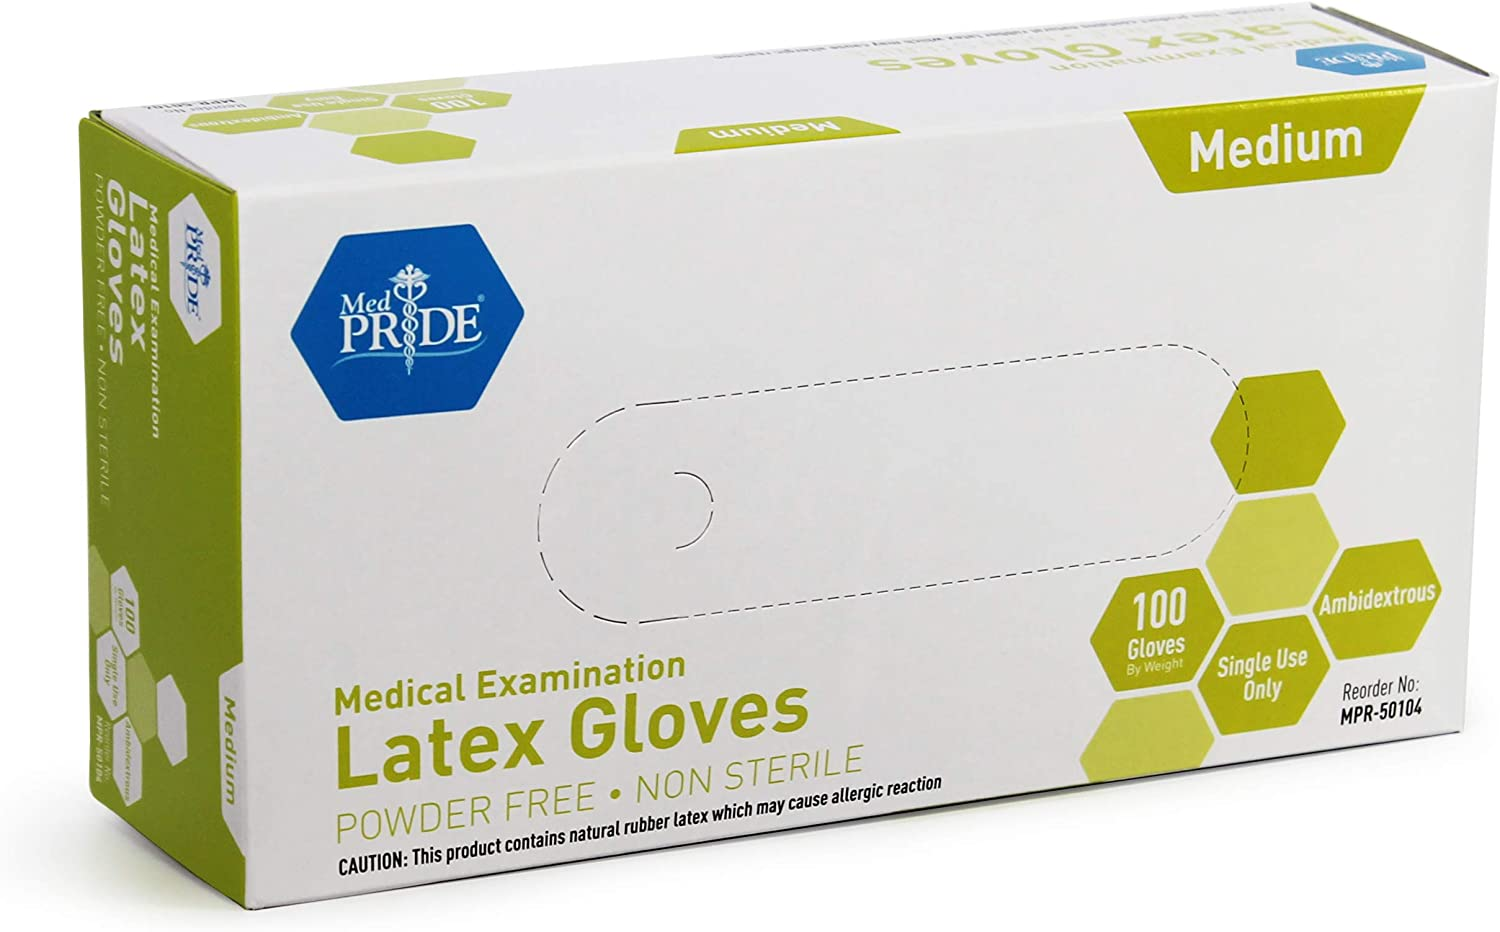 Medpride Medical Exam Latex Gloves| 5 mil Thick, Medium Box of 100| Powder-Free, Non-Sterile, Heavy Duty Exam Gloves| Professional Grade for Hospitals, Law Enforcement, Food Vendors, Tattoo Artists